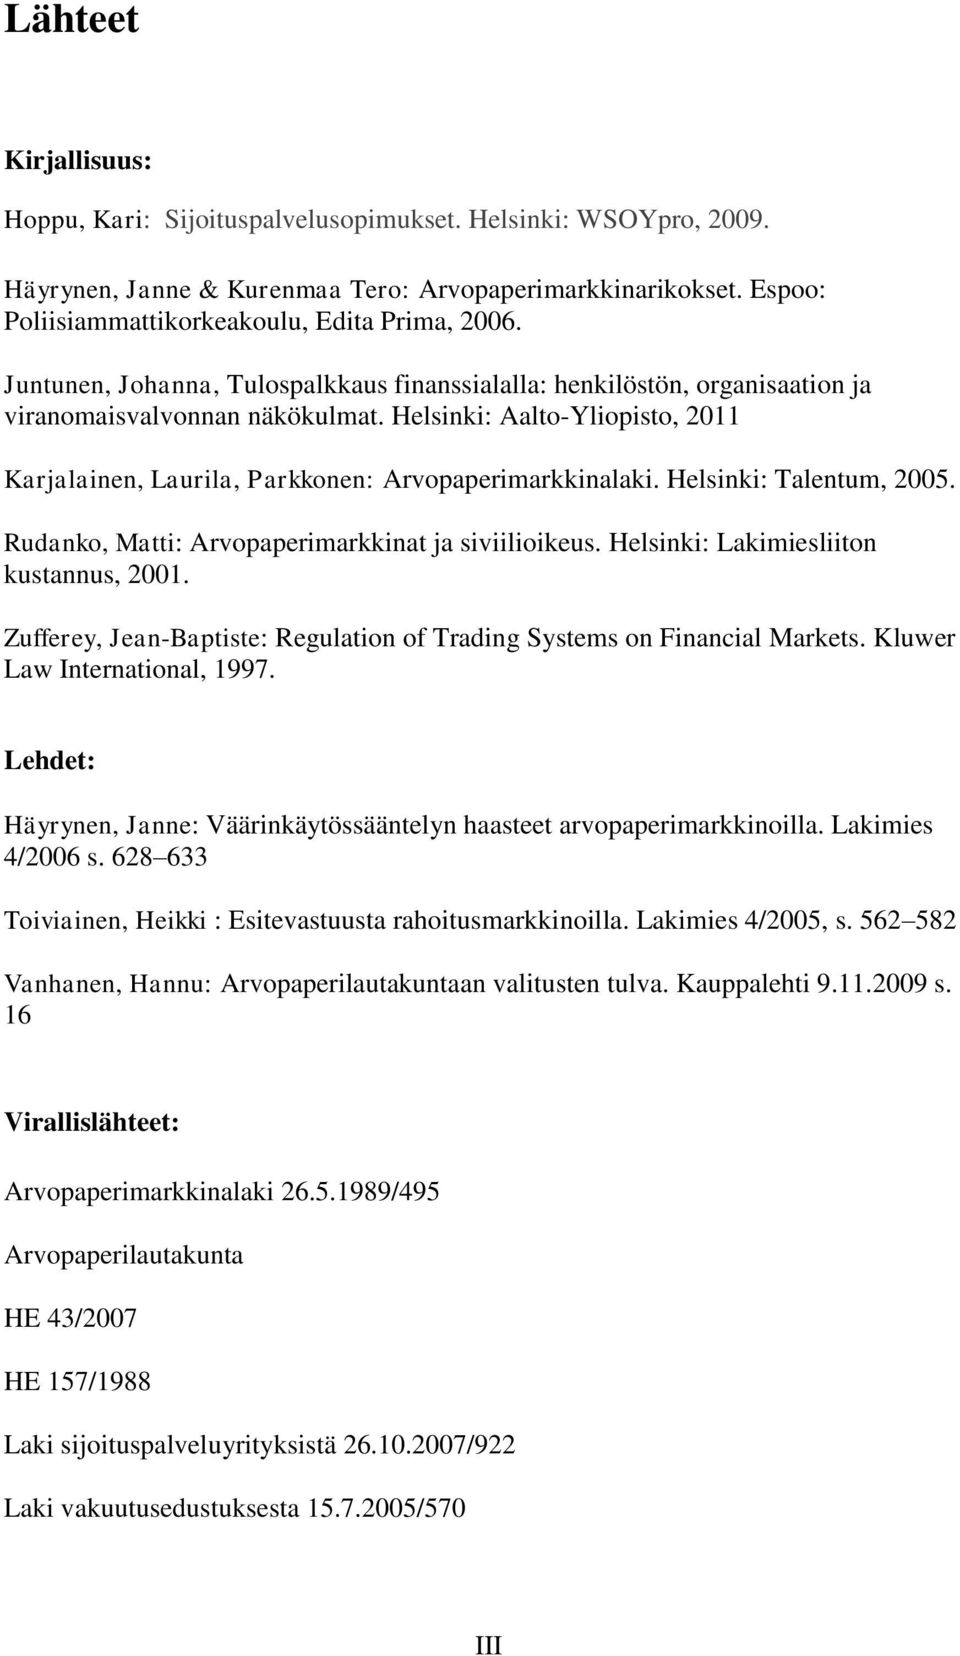 Helsinki: Talentum, 2005. Rudanko, Matti: Arvopaperimarkkinat ja siviilioikeus. Helsinki: Lakimiesliiton kustannus, 2001. Zufferey, Jean-Baptiste: Regulation of Trading Systems on Financial Markets.